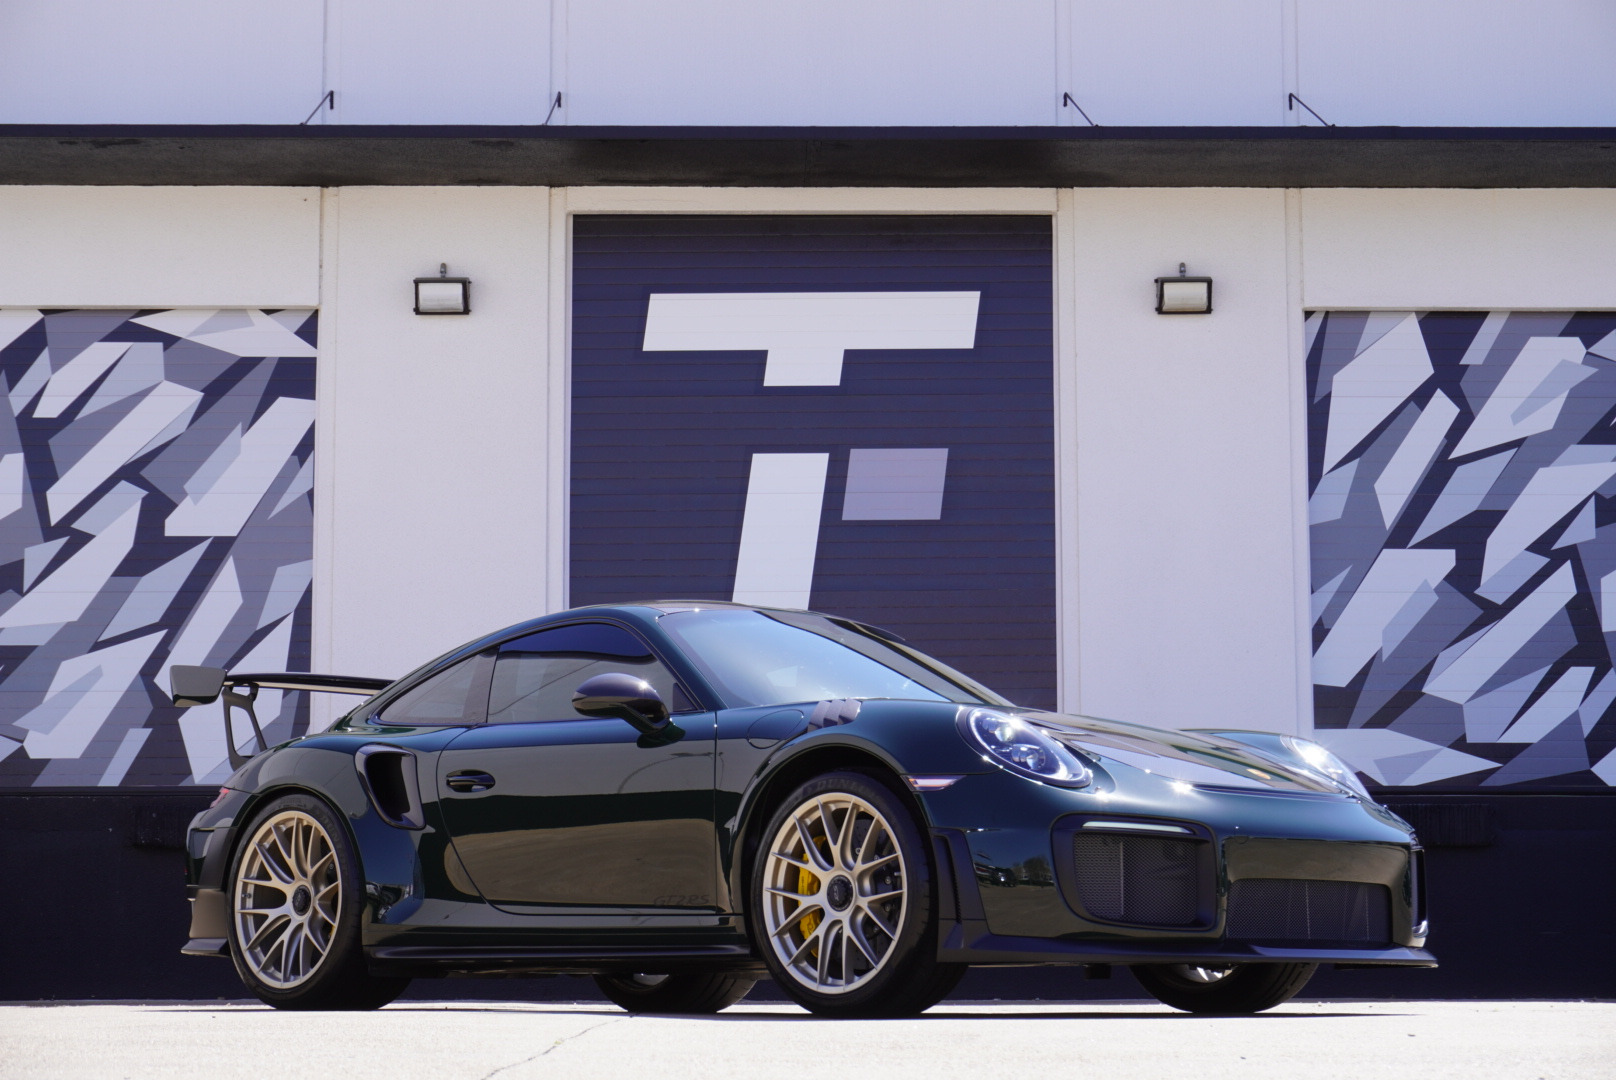 Used 2019 Porsche 911 Gt2 Rs For Sale 439 900 Tactical Fleet Stock Tf1522